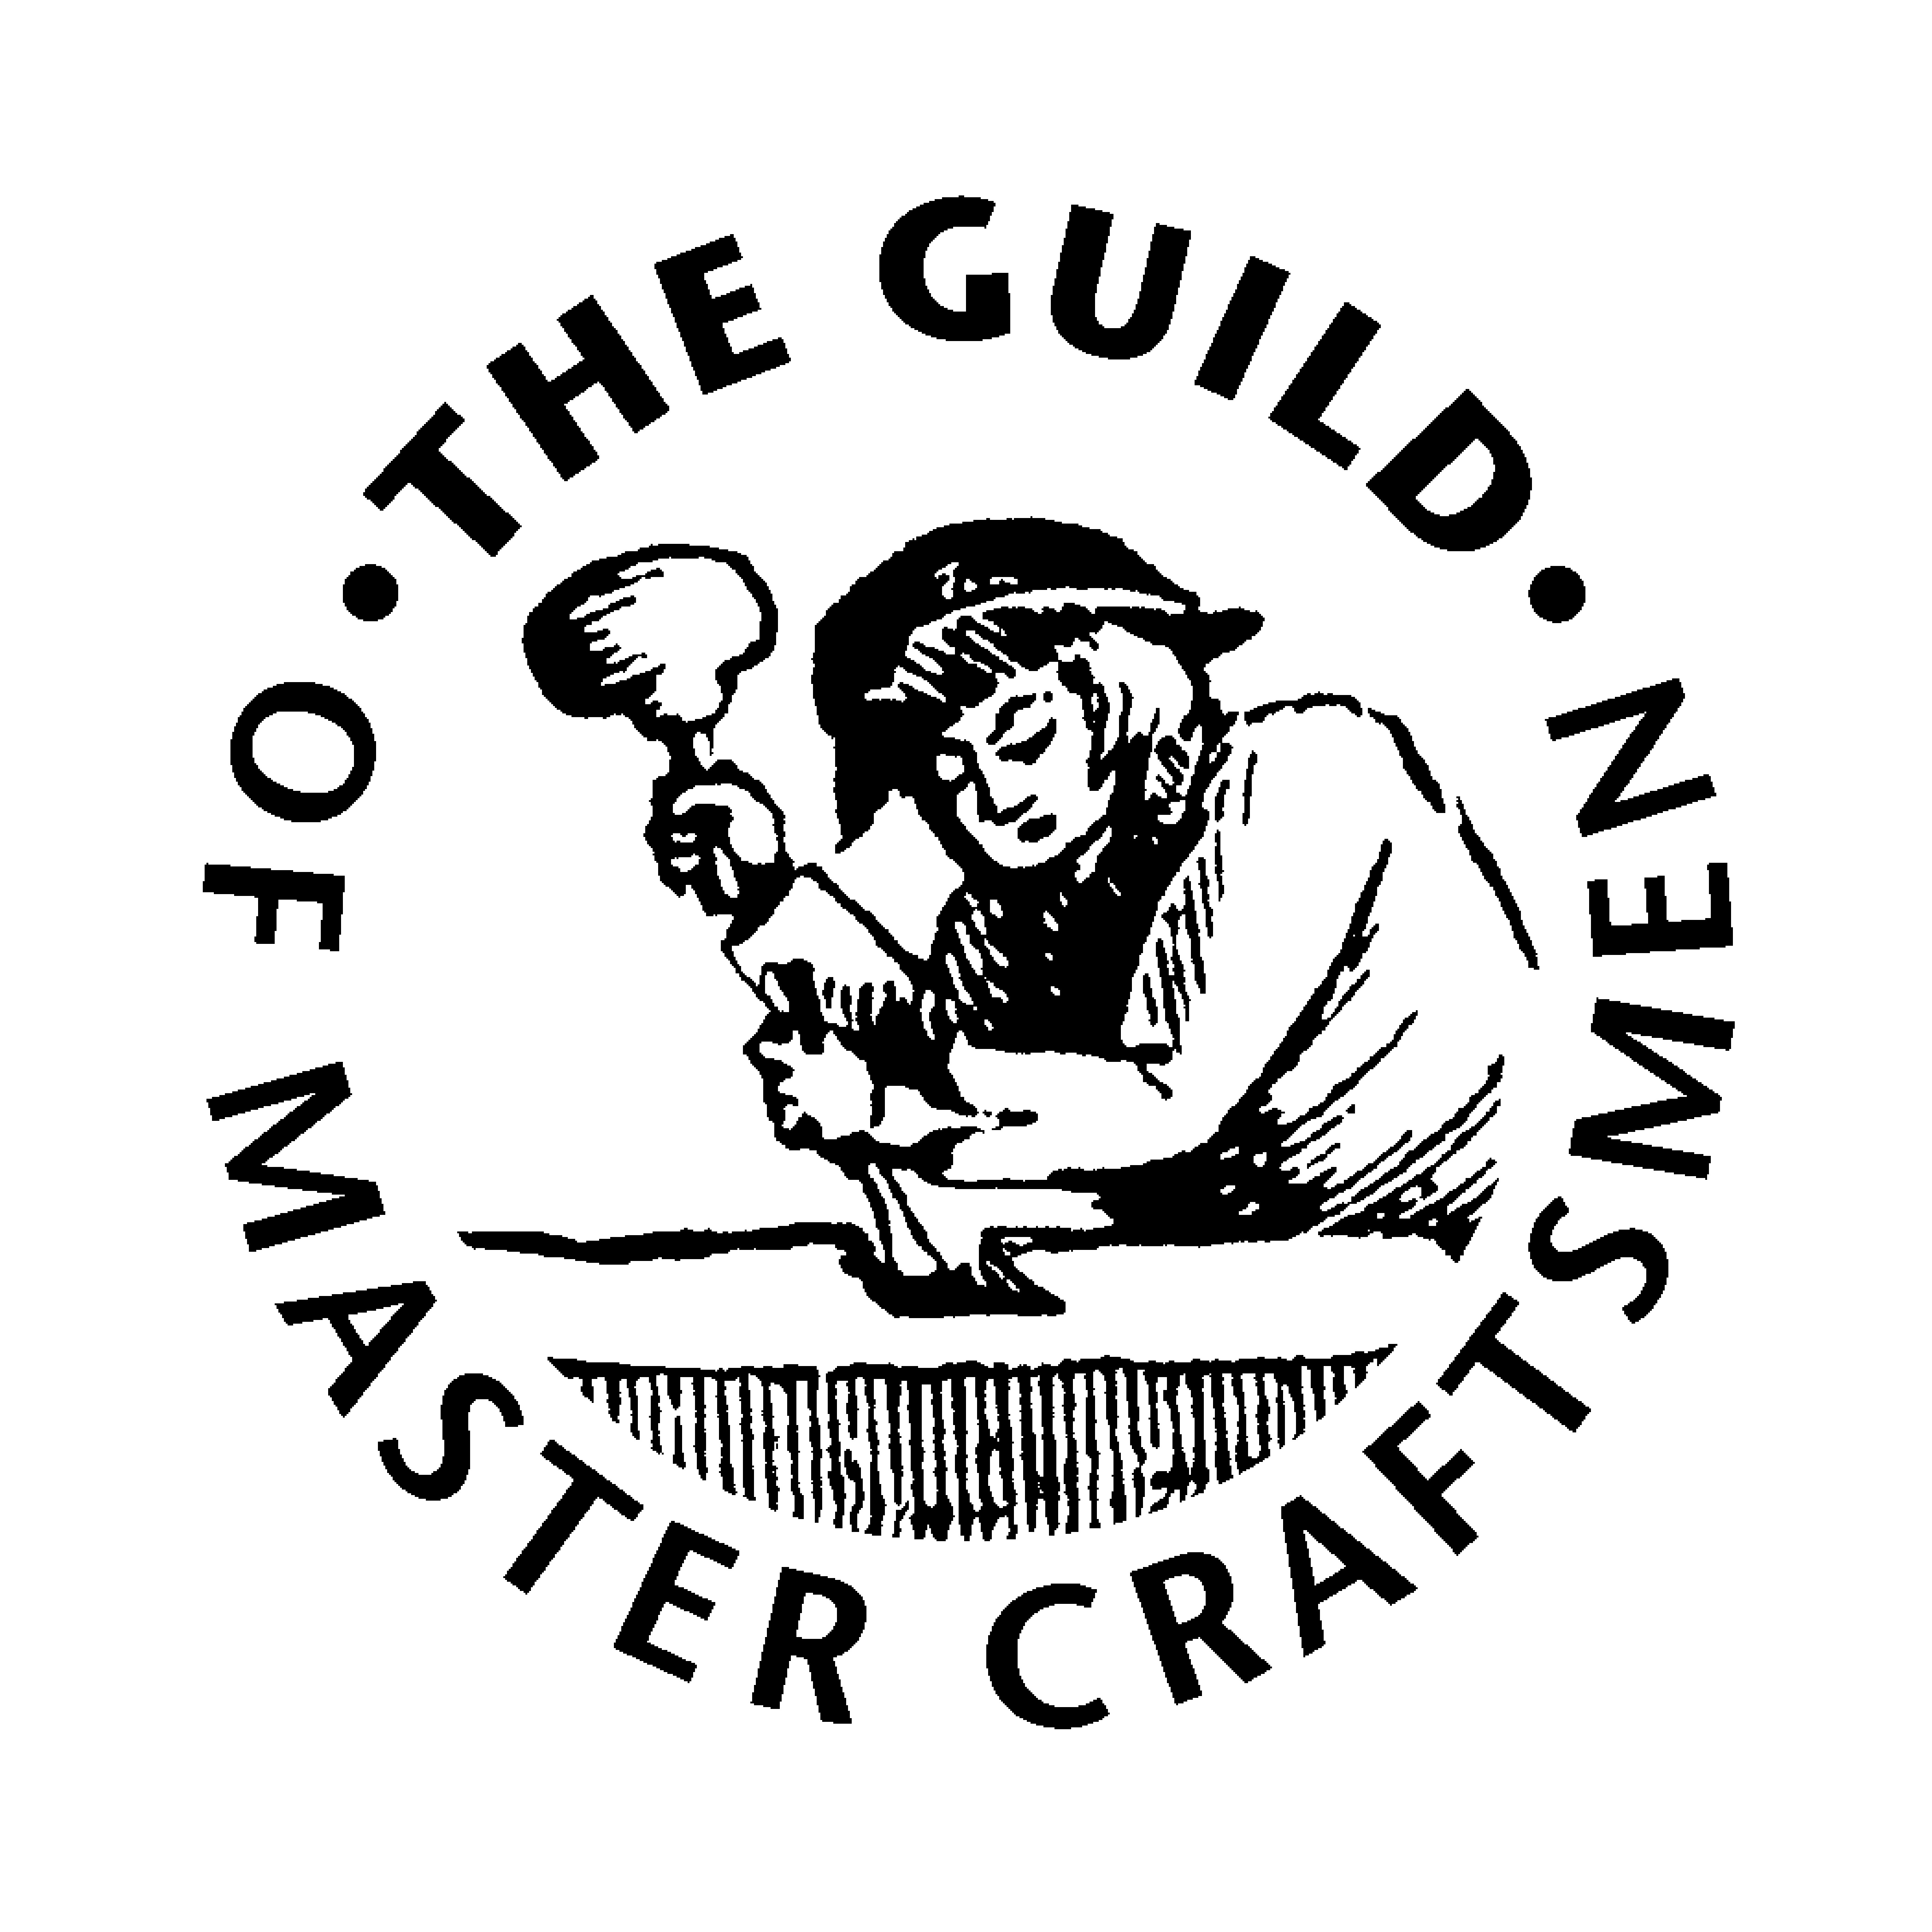 Approved by the Guild of Master Craftsmen